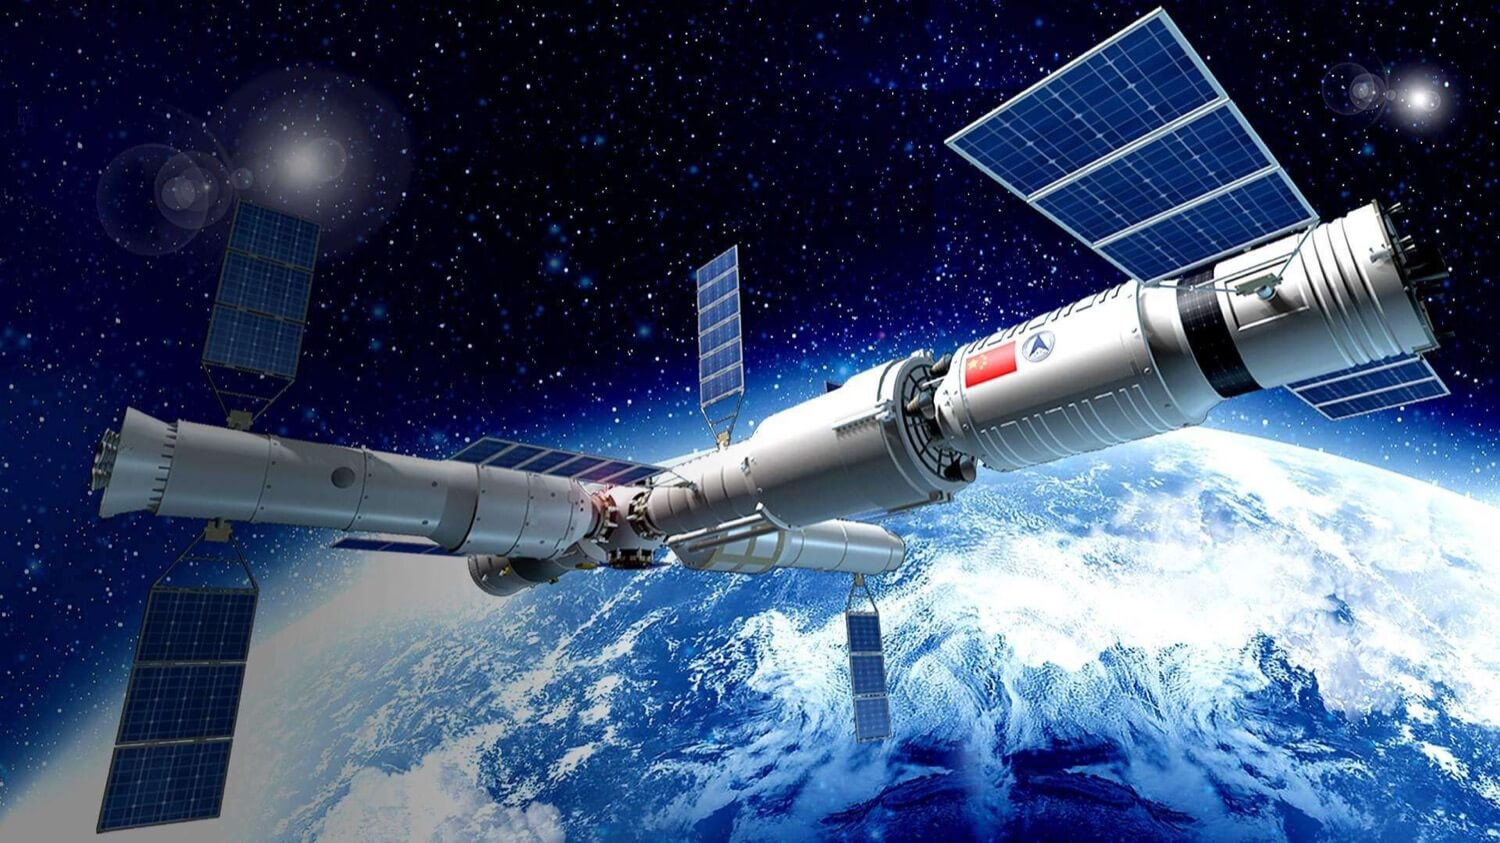 China is building a new international space station by 2022